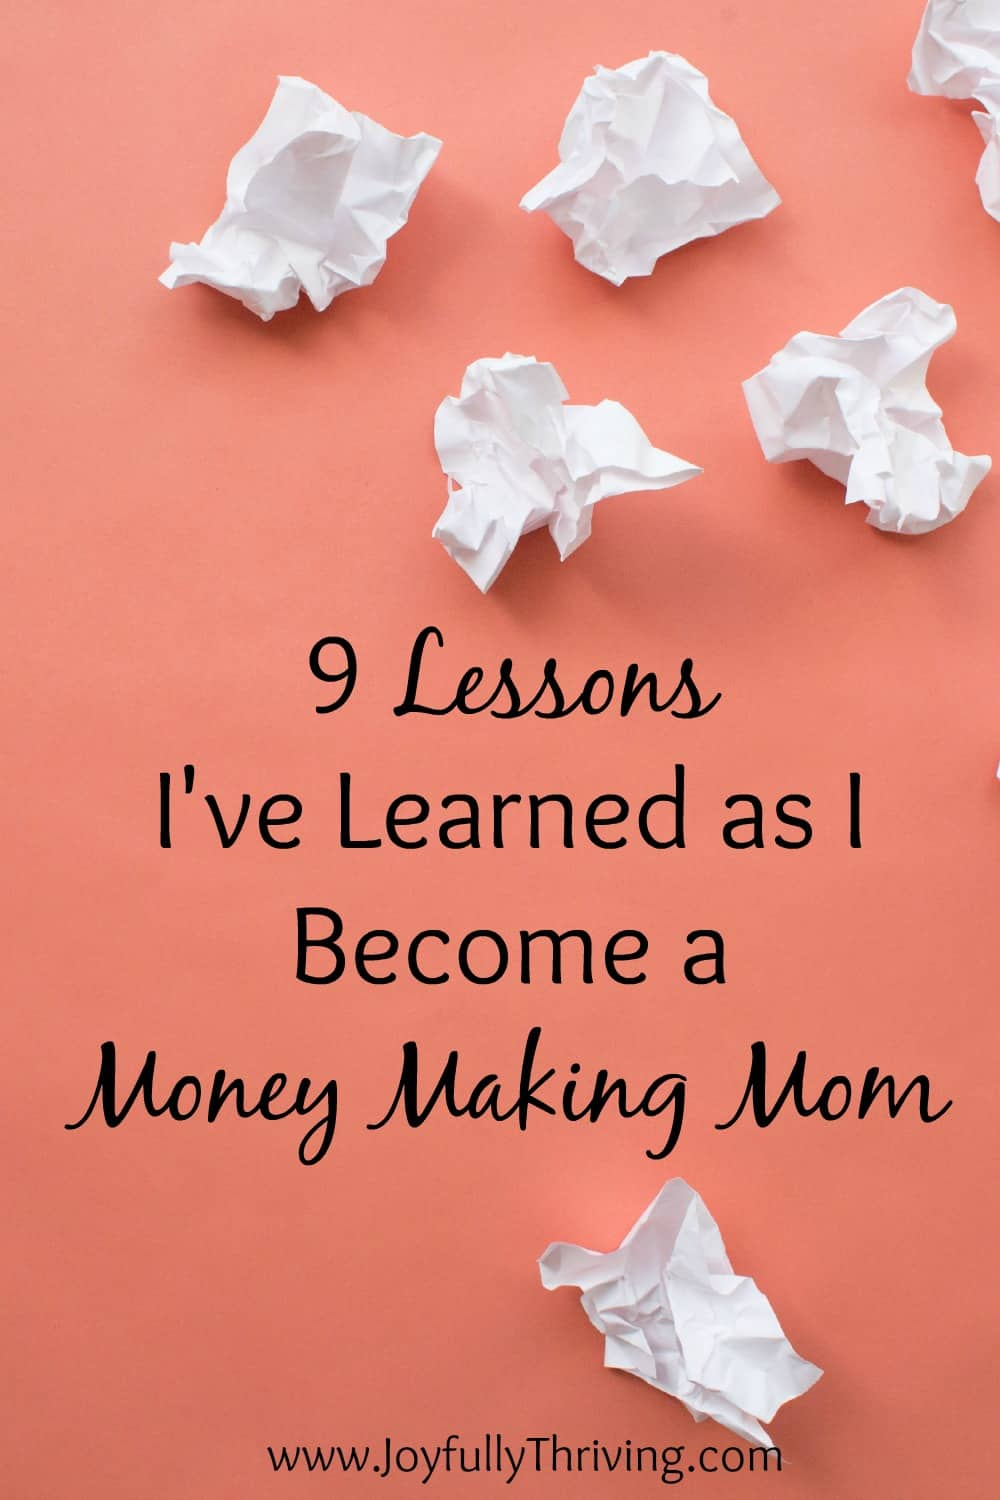 9 Lessons I've Learned as I Become a Money Making Mom